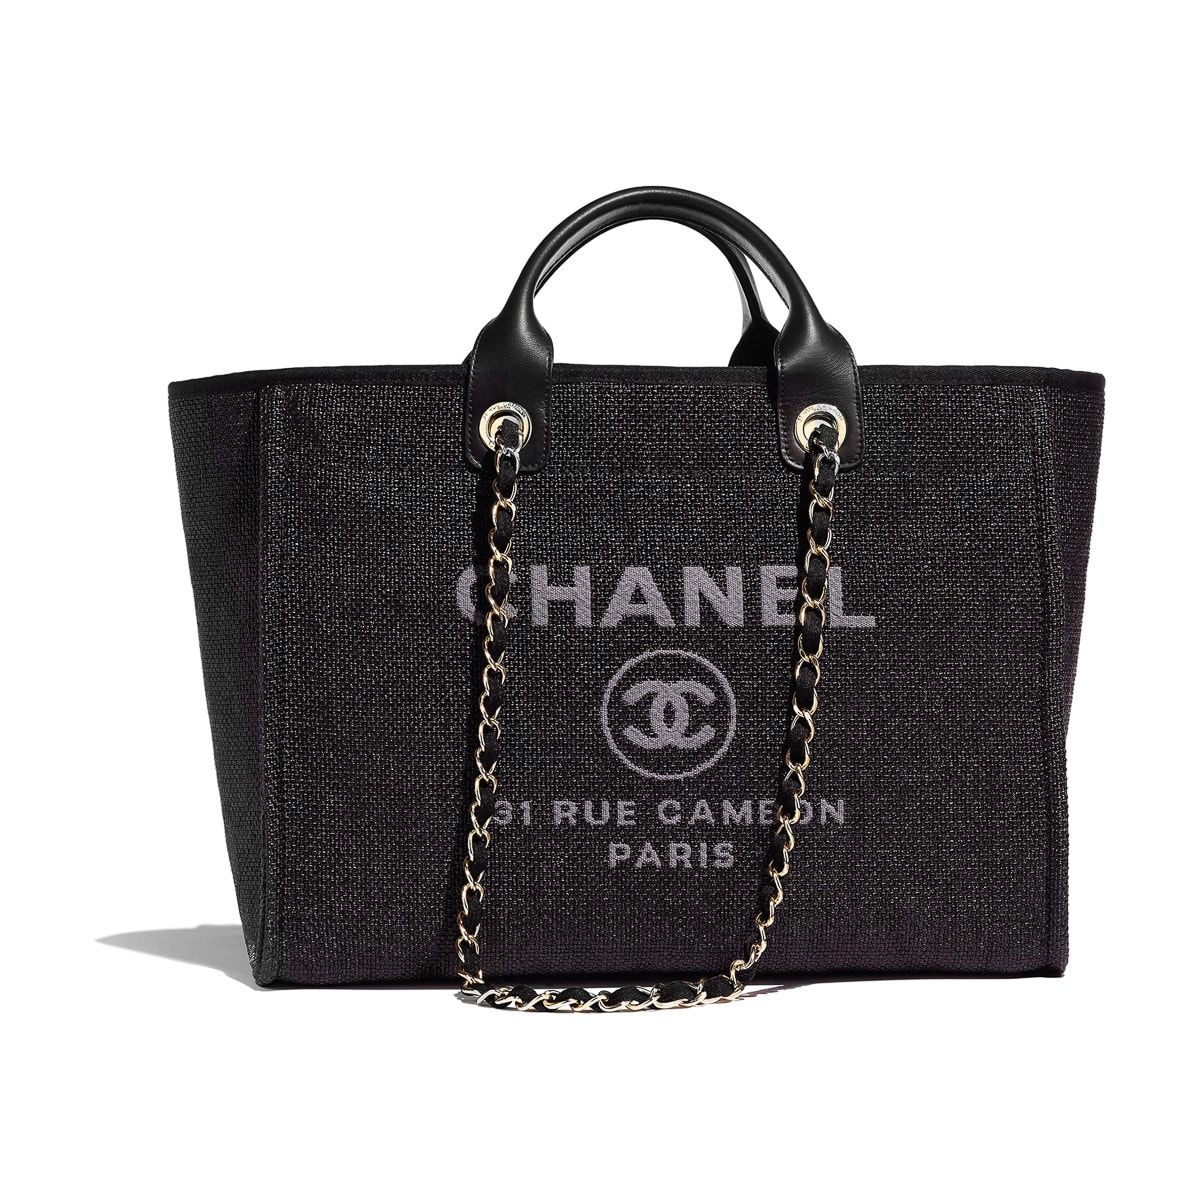 d66fe238922a94 Chanel-Cruise-2019-16: CHANEL SHOPPING BAG (Deauville) $3,000 | BAGS ...